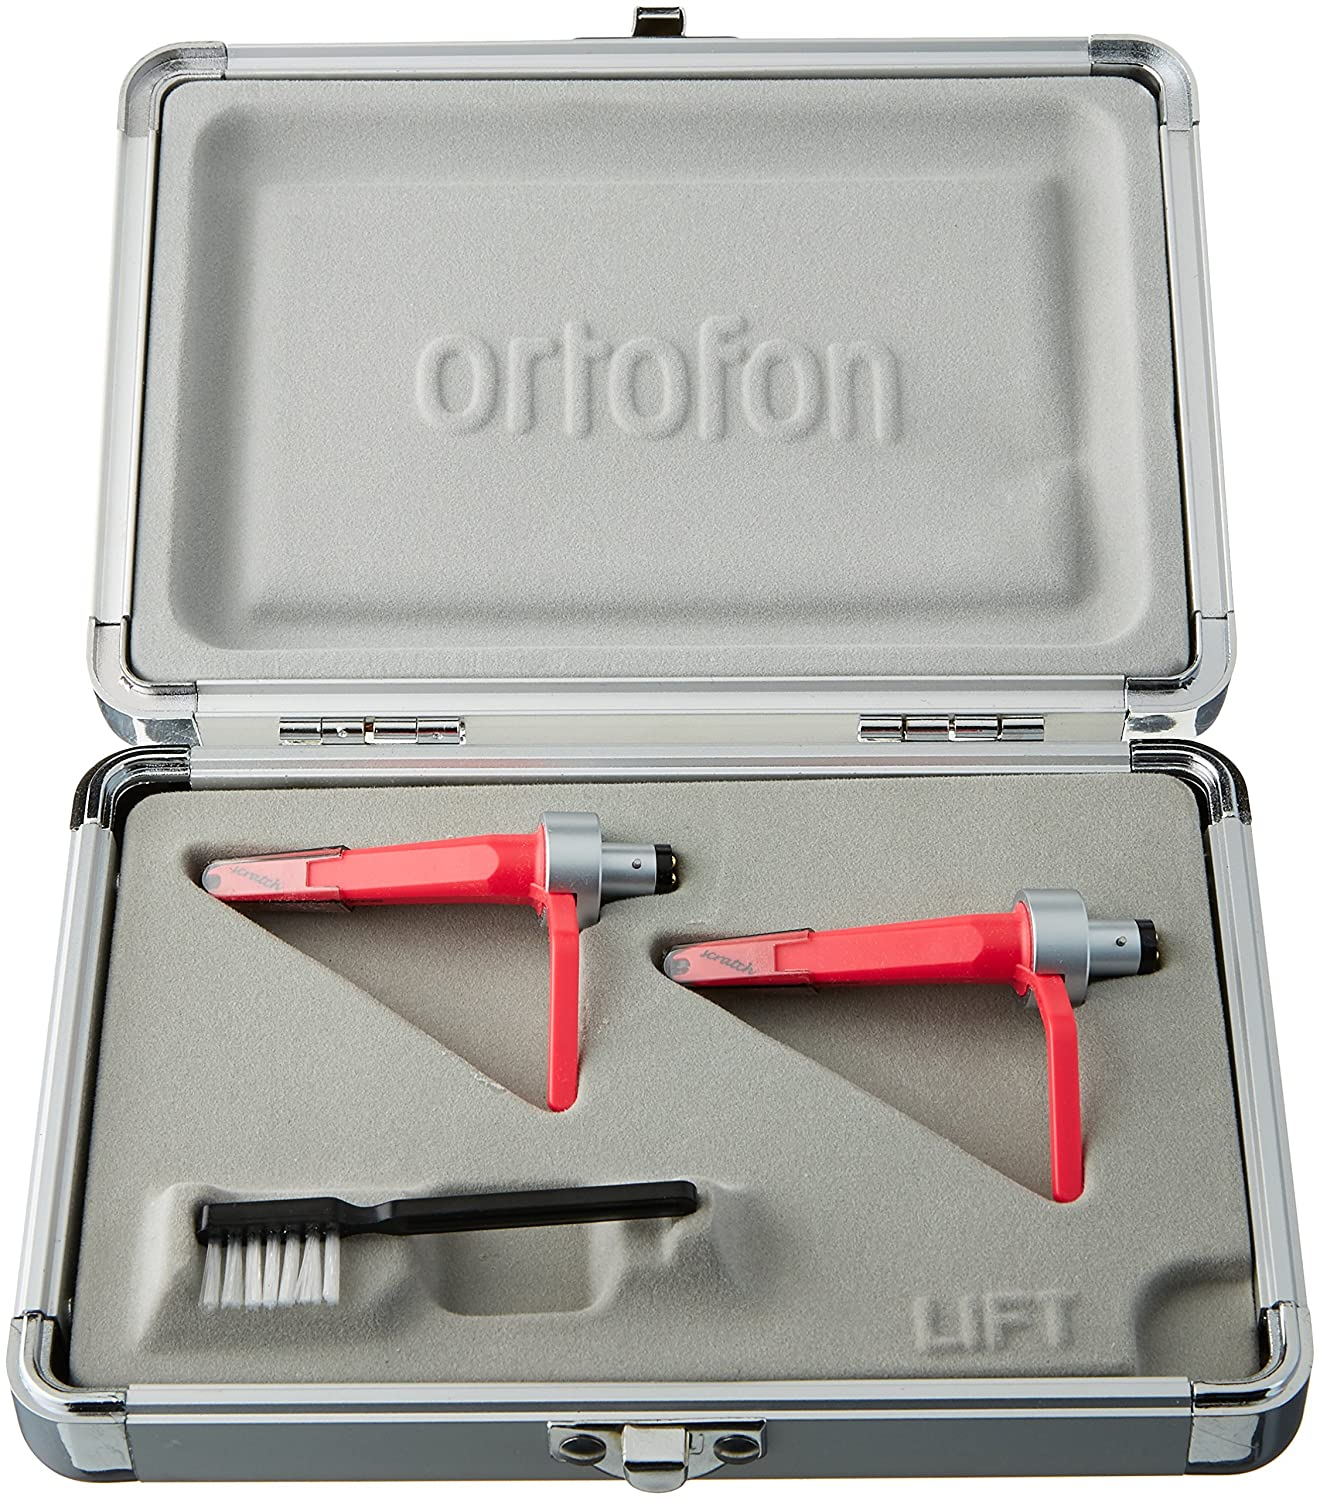 Ortofon Concorde Scratch Twin Pack - 2 x DJ Cartridges each fitted with stylus (japan import)